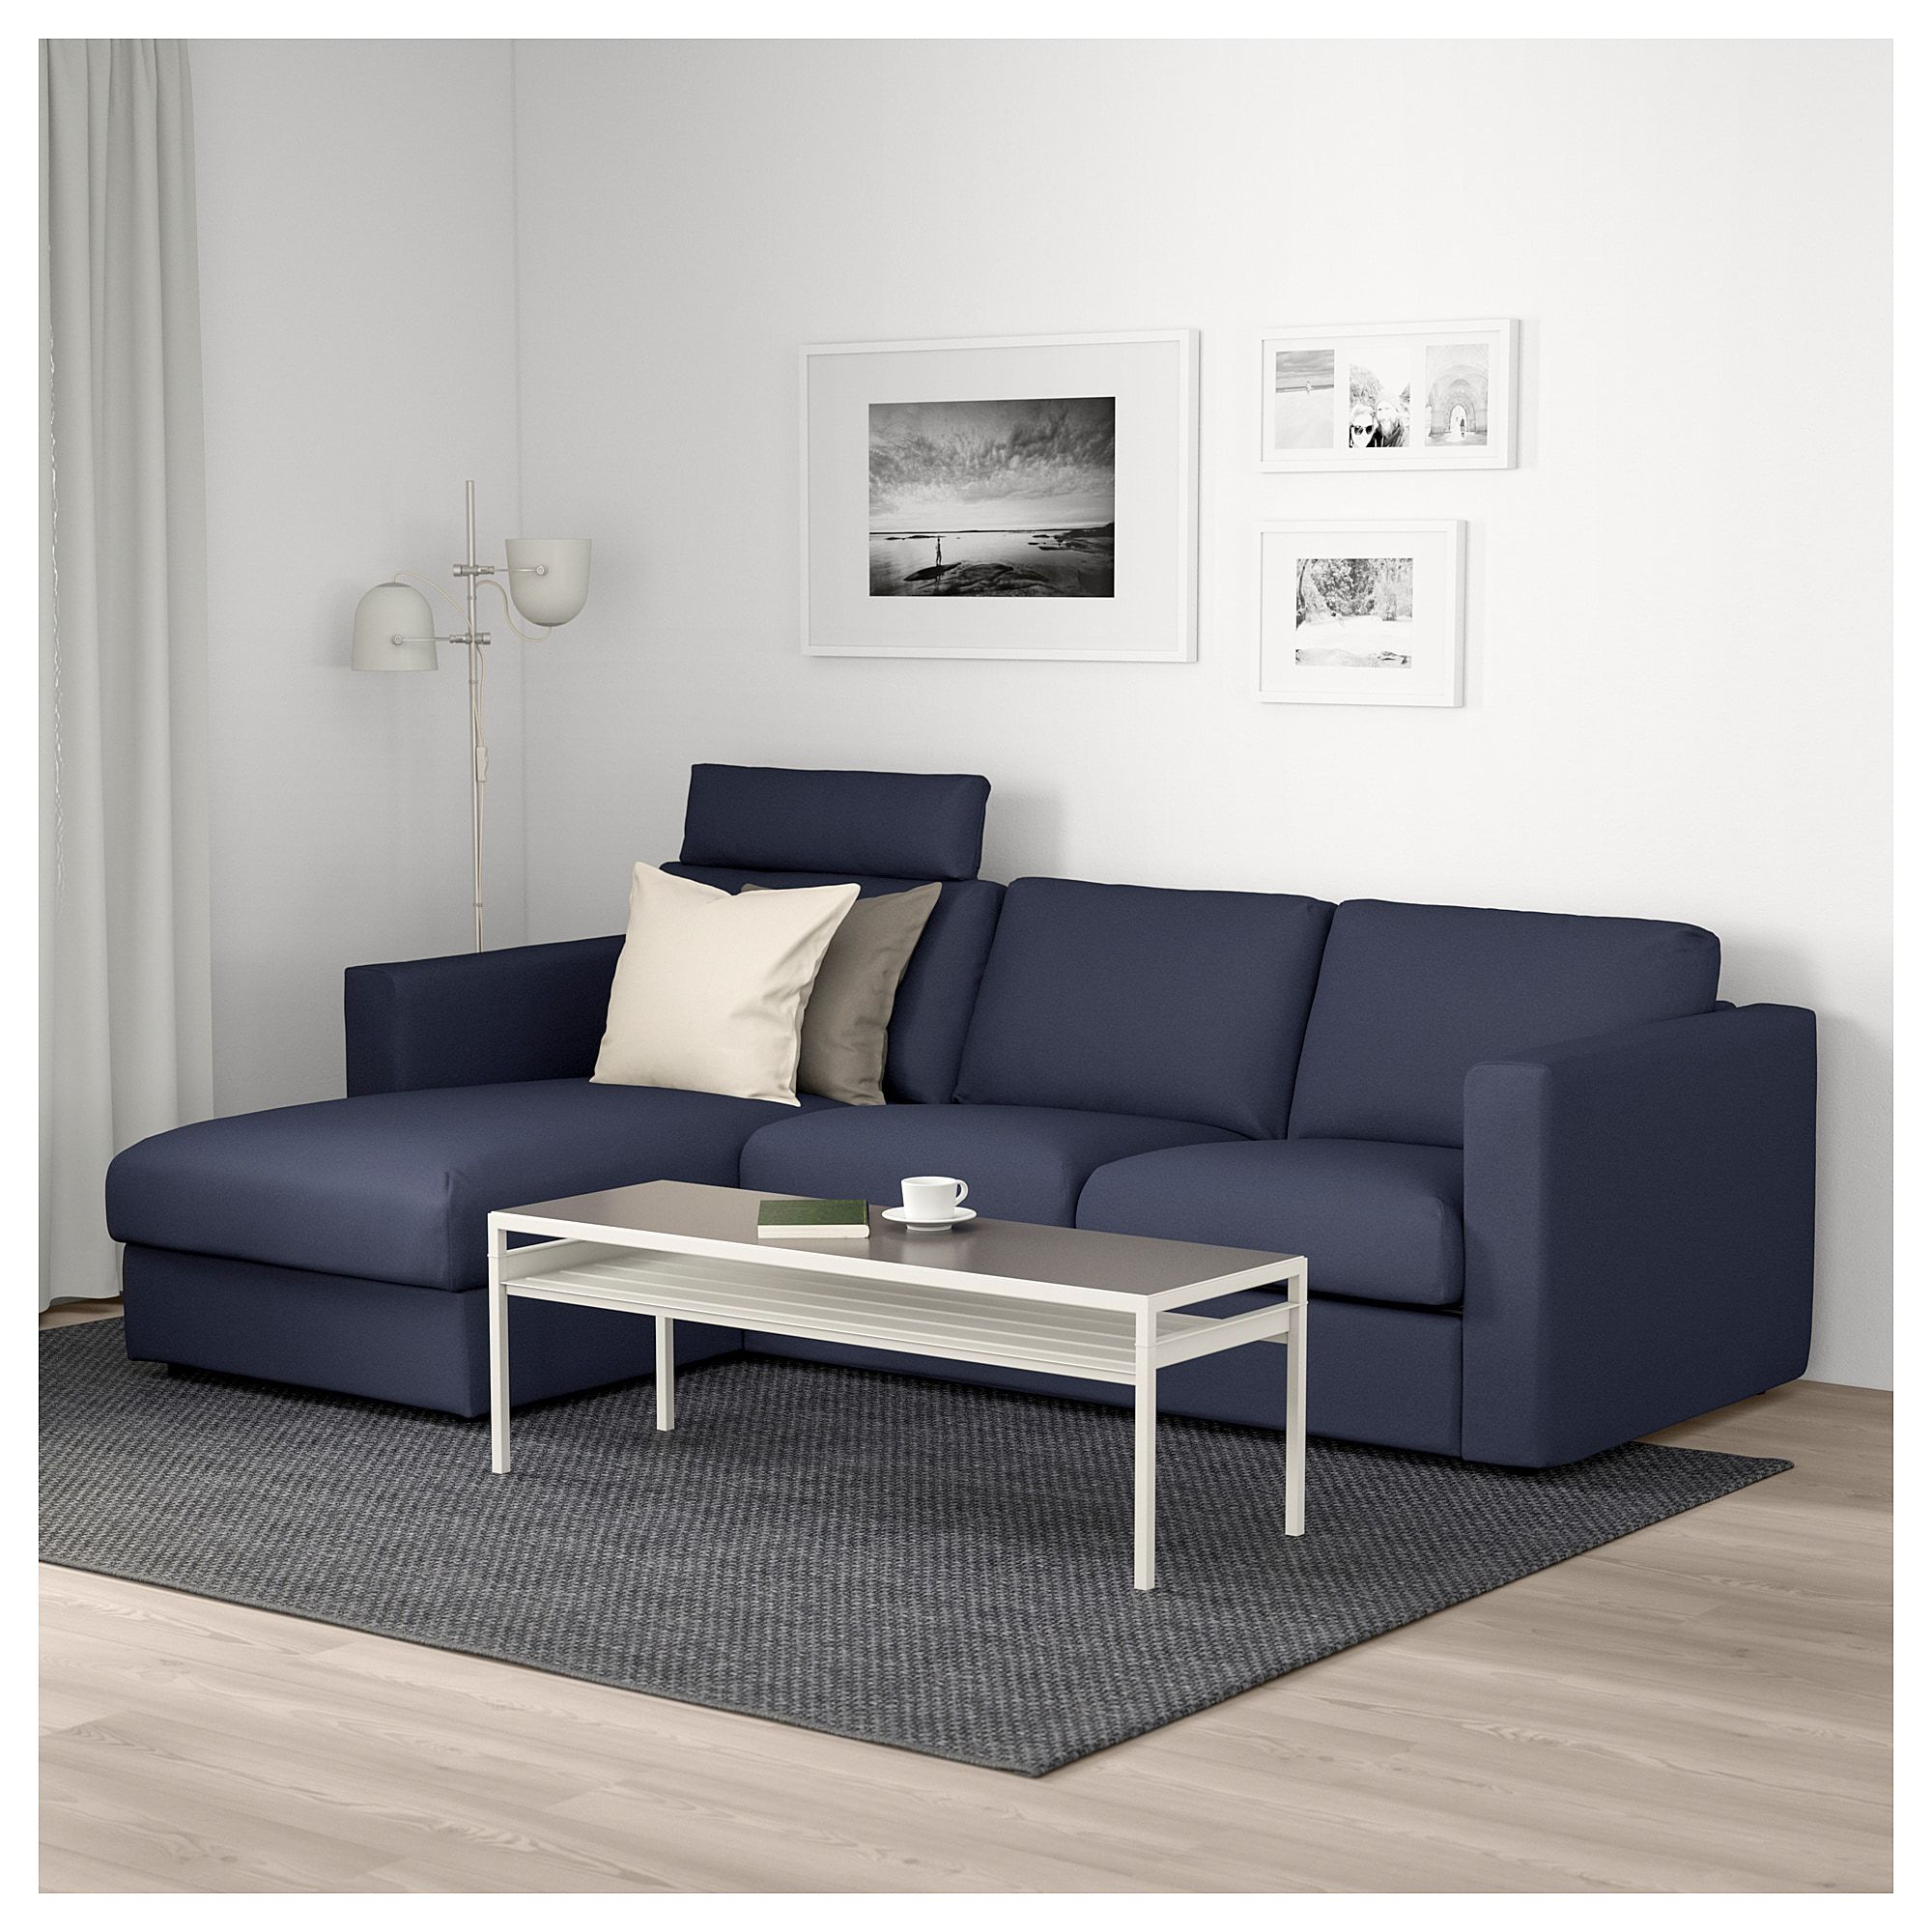 Mobly Sofa Chaise Vimle Sofa With Chaise With Headrest Orrsta Black Blue